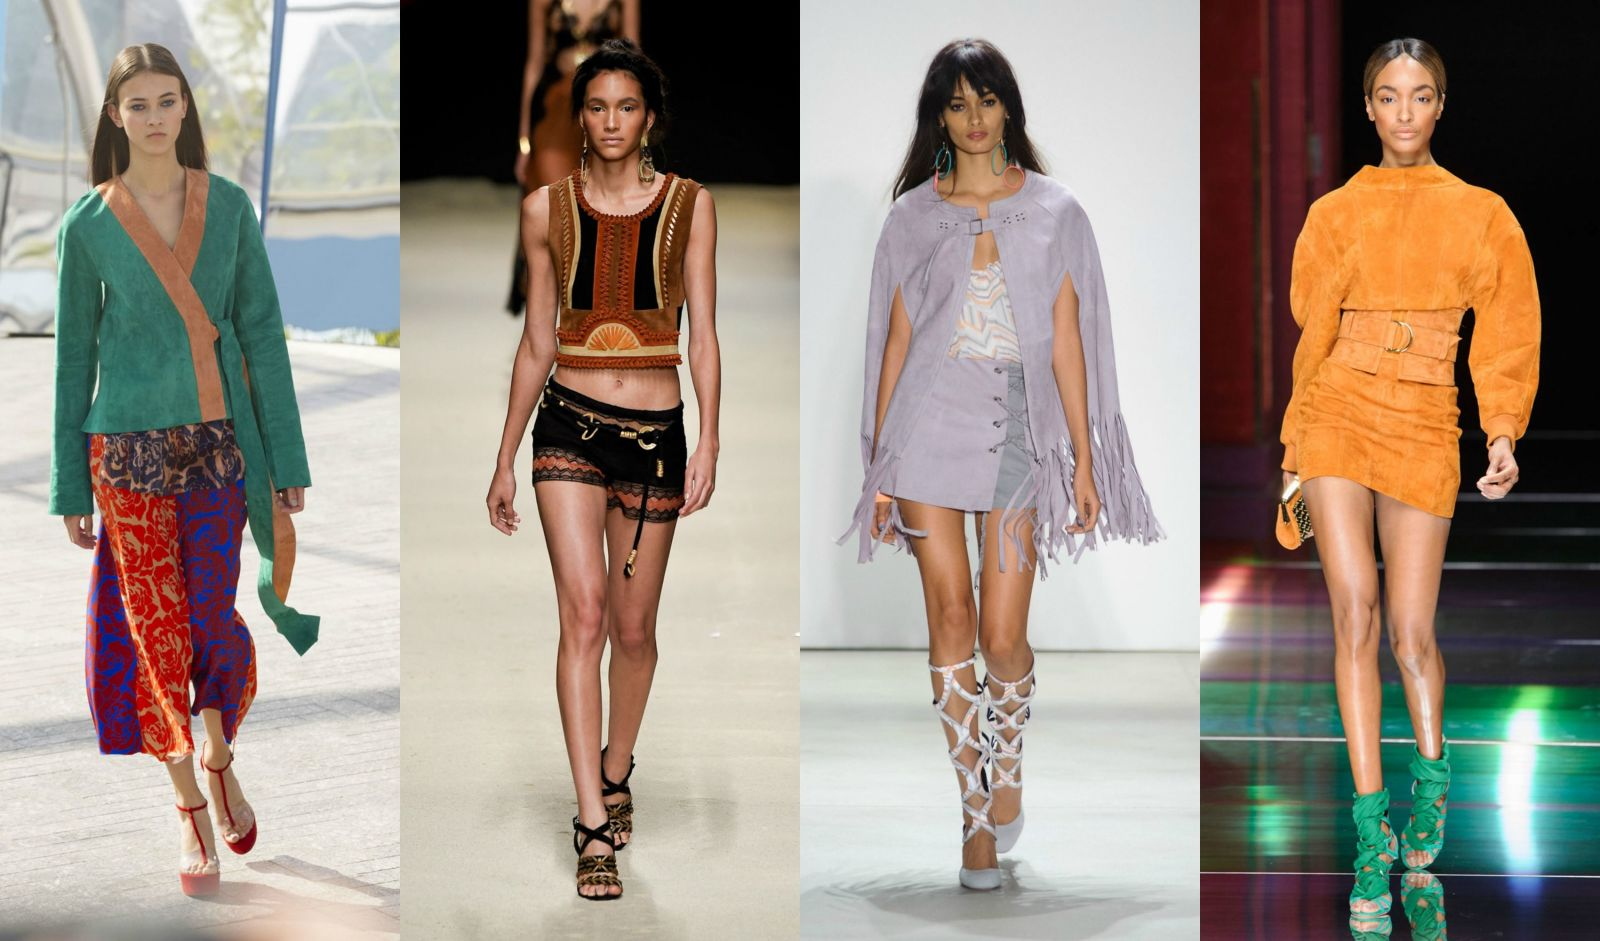 Fashion Trends for Spring 2016 | From left to right: Jonathan Saunders, Alberta Ferretti, Rebecca Minkoff and Olivier Rousteing